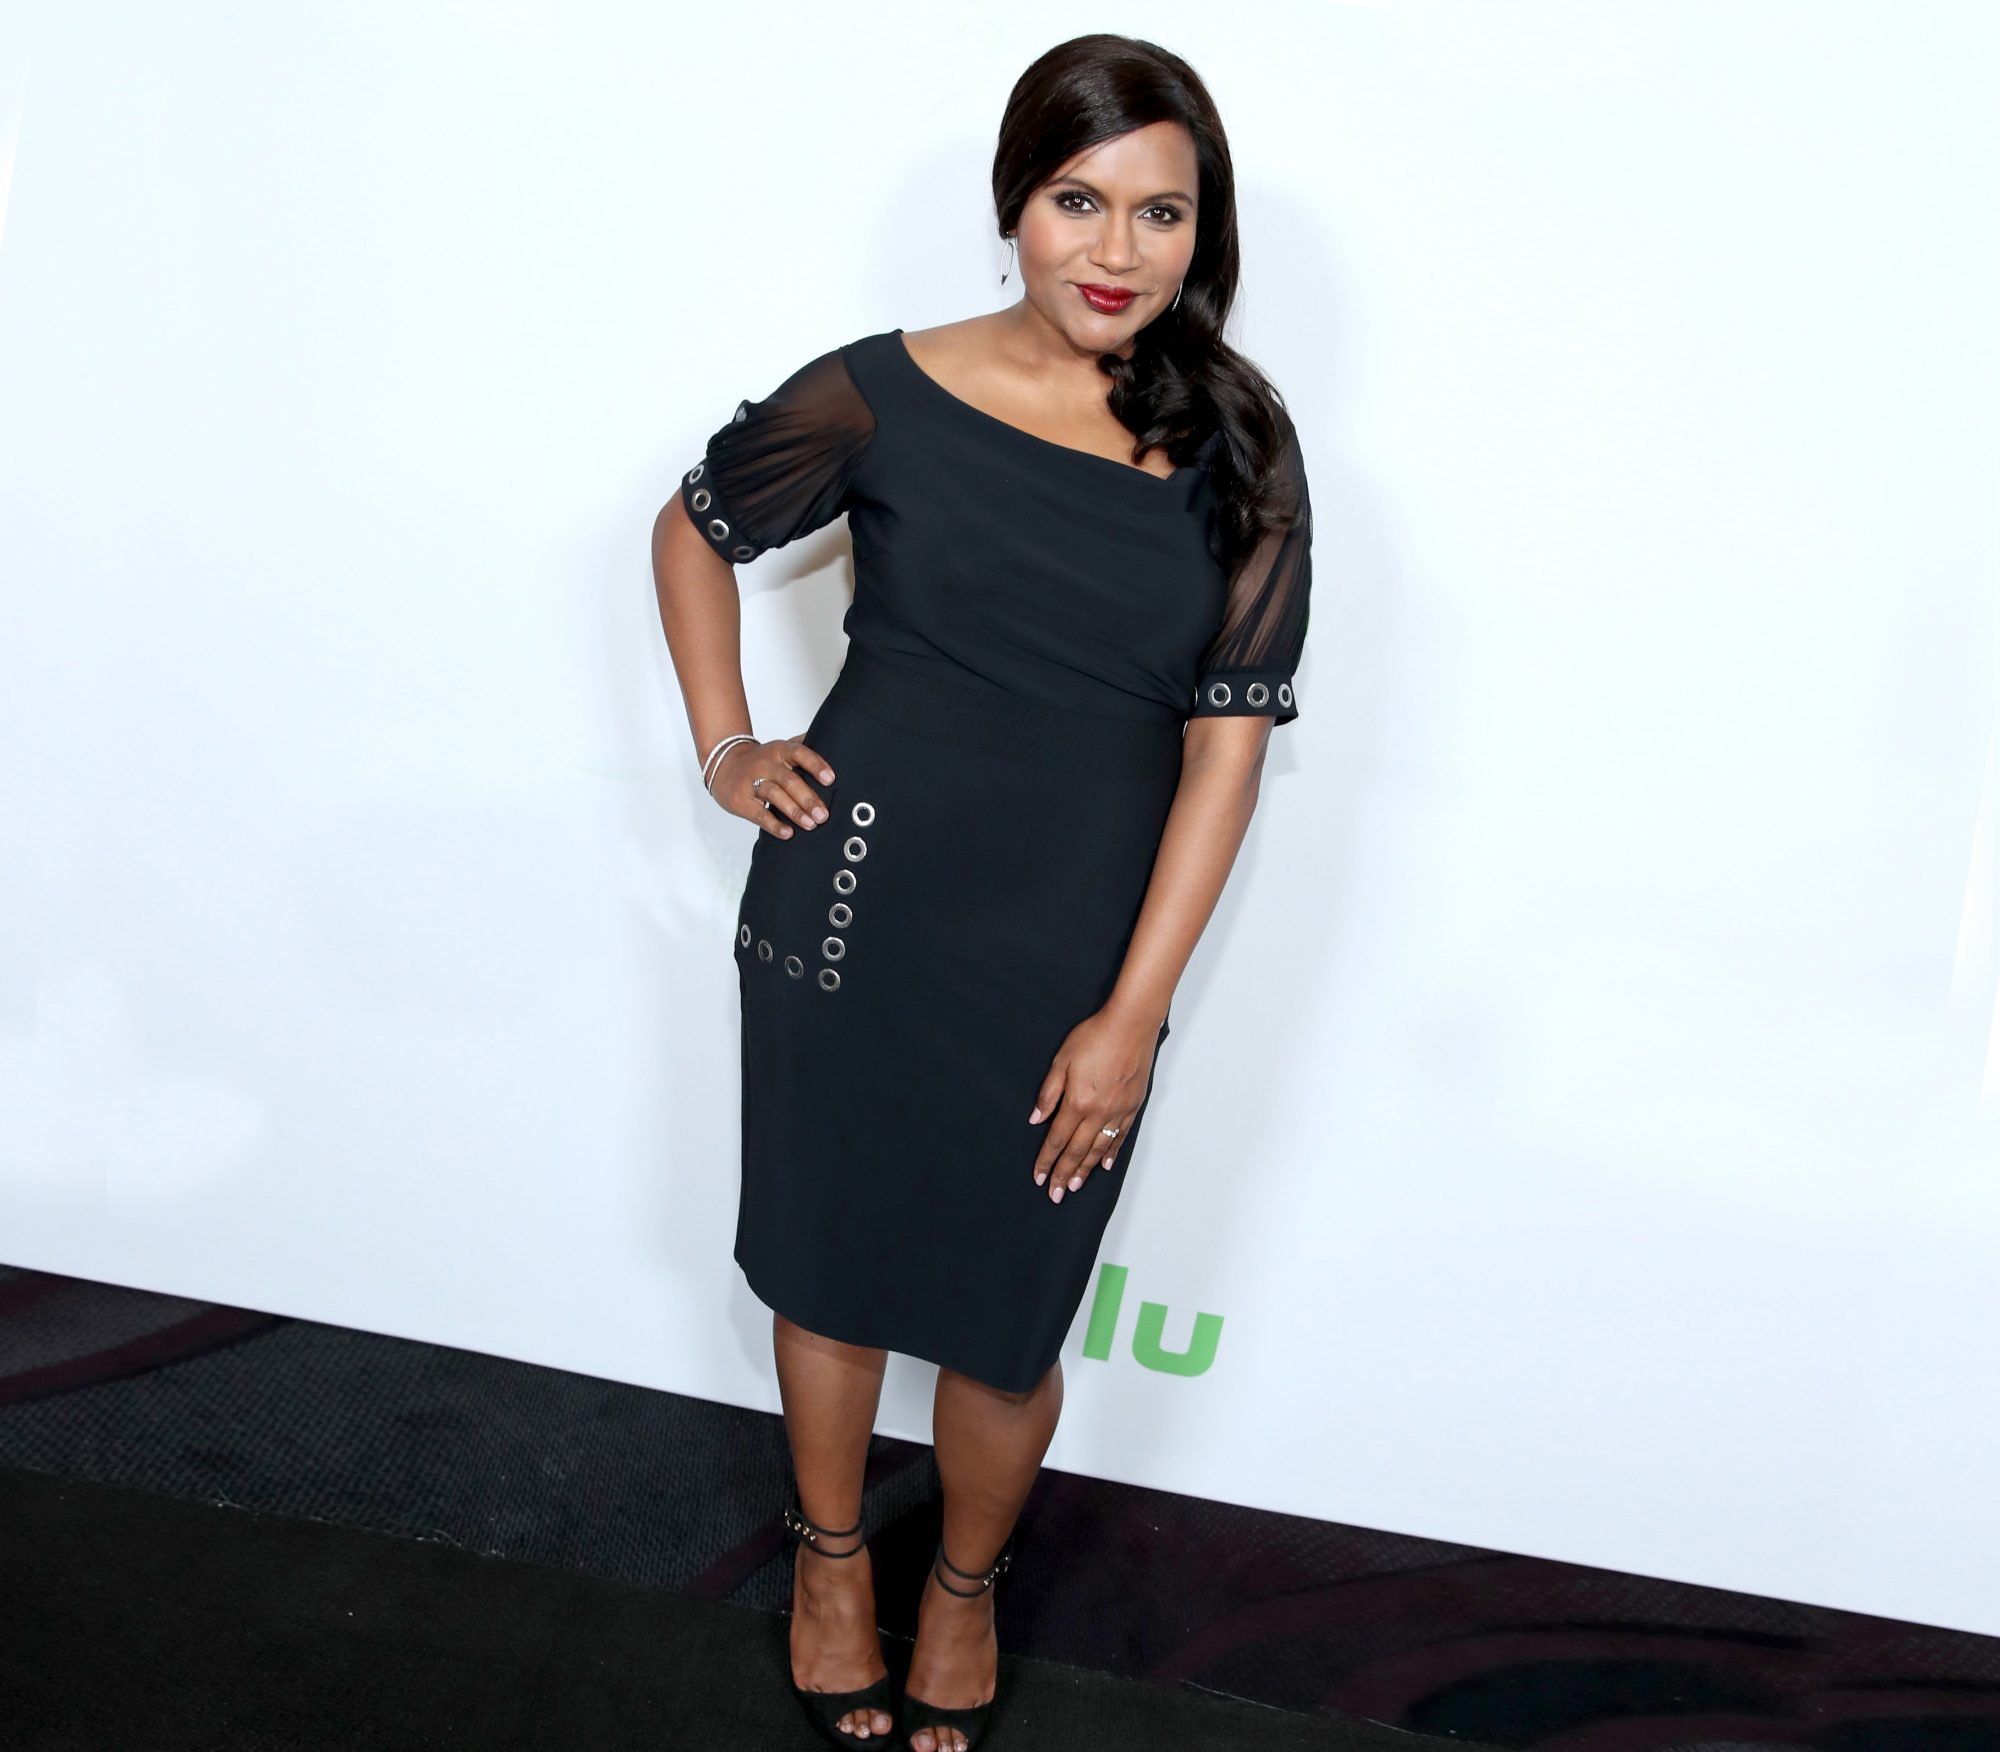 Mindy Kaling Welcomes Daughter Katherine: Report